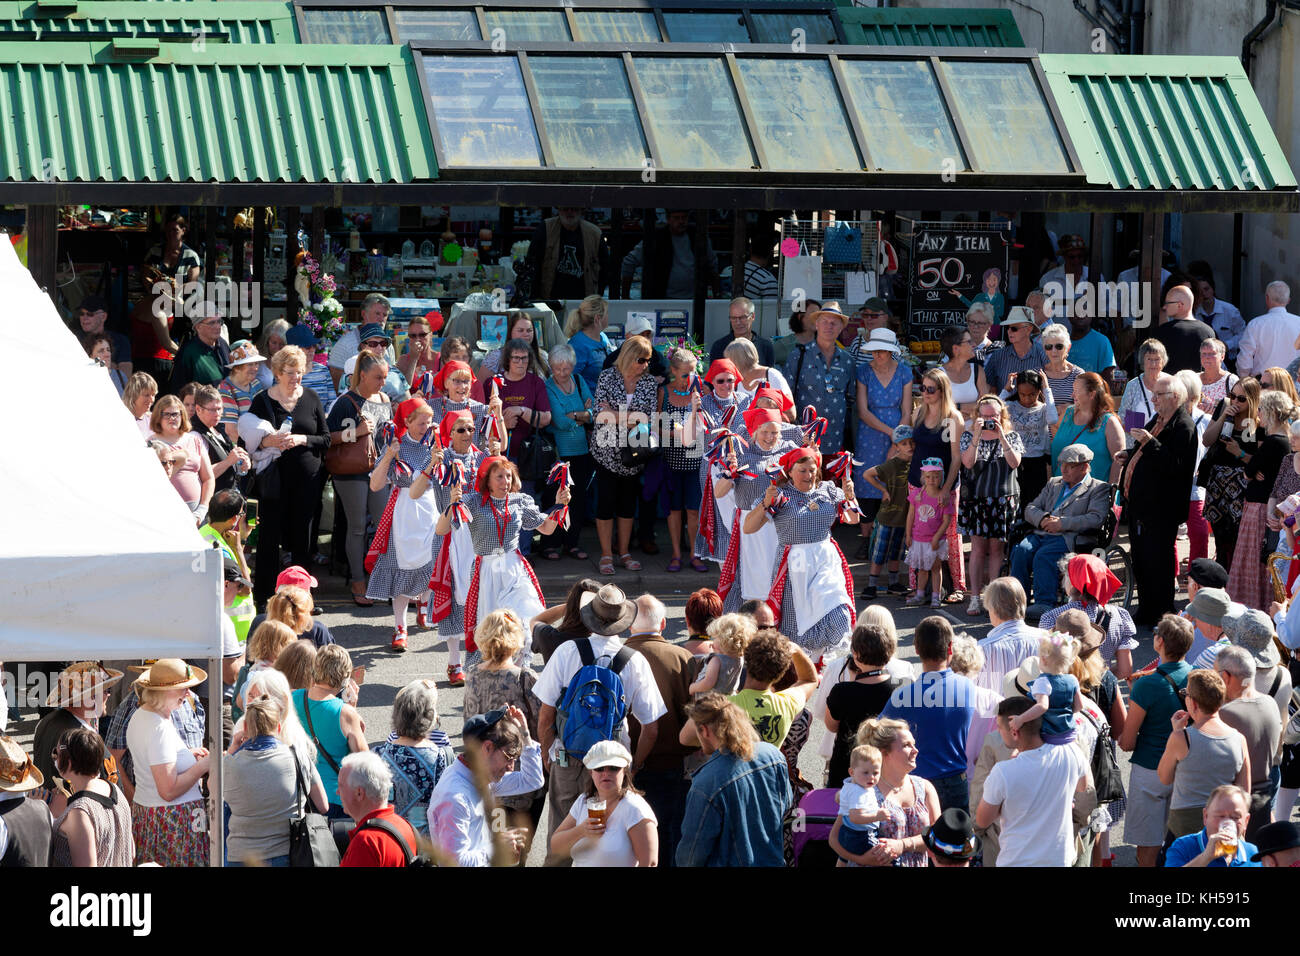 The Poynton Jemmers morris dancers at Sowerby Bridge market during the 2017 Rushbearing Festival - Stock Image